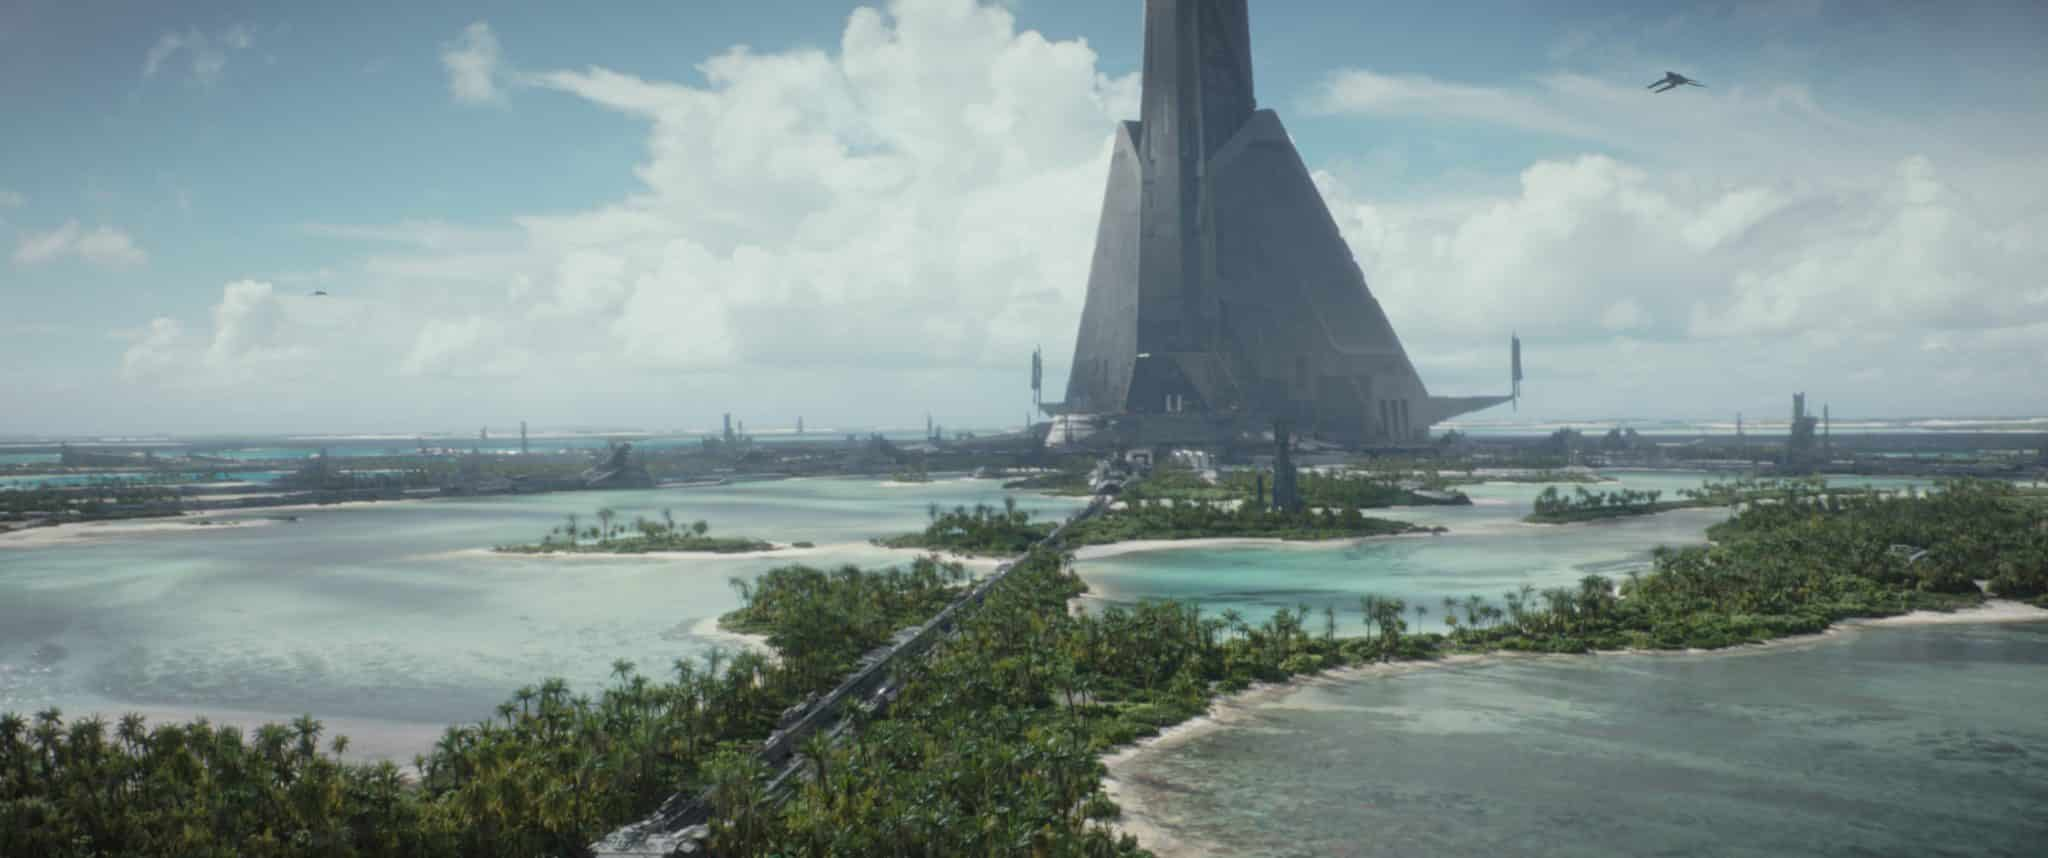 NEW Trailer for Rogue One: A Star Wars Story #RogueOne | ThisNThatwithOlivia.com